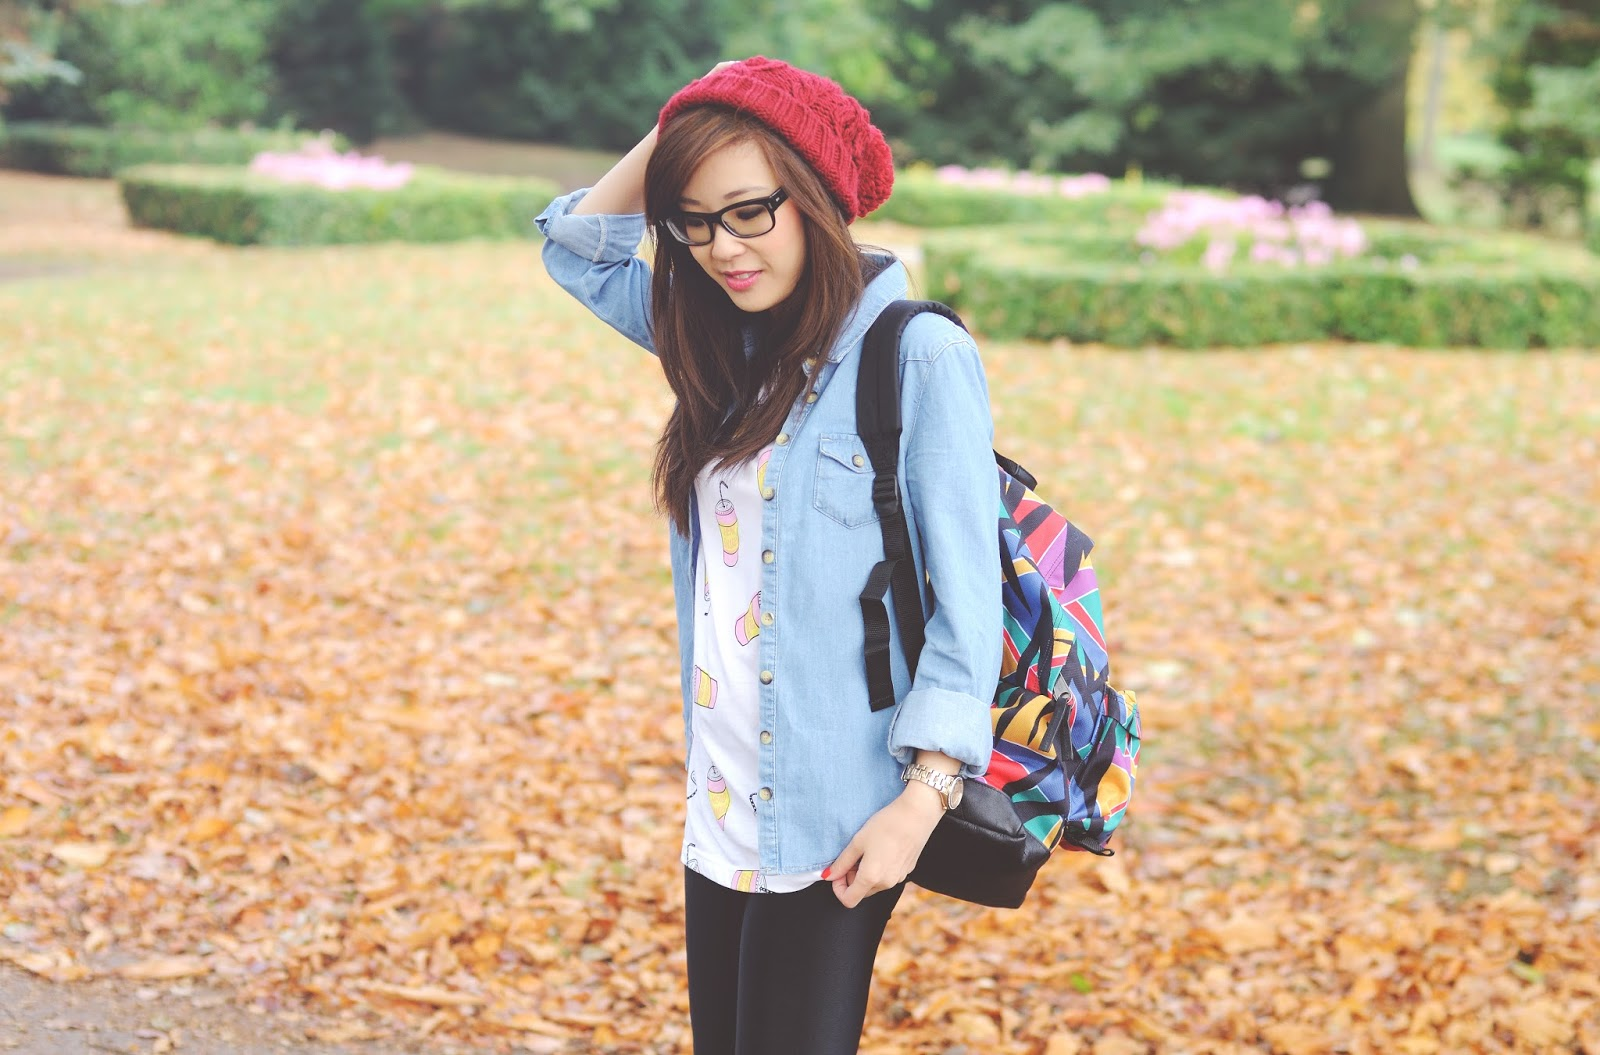 autumn outfit 2014, what to wear for fall, what to wear with denim shirt